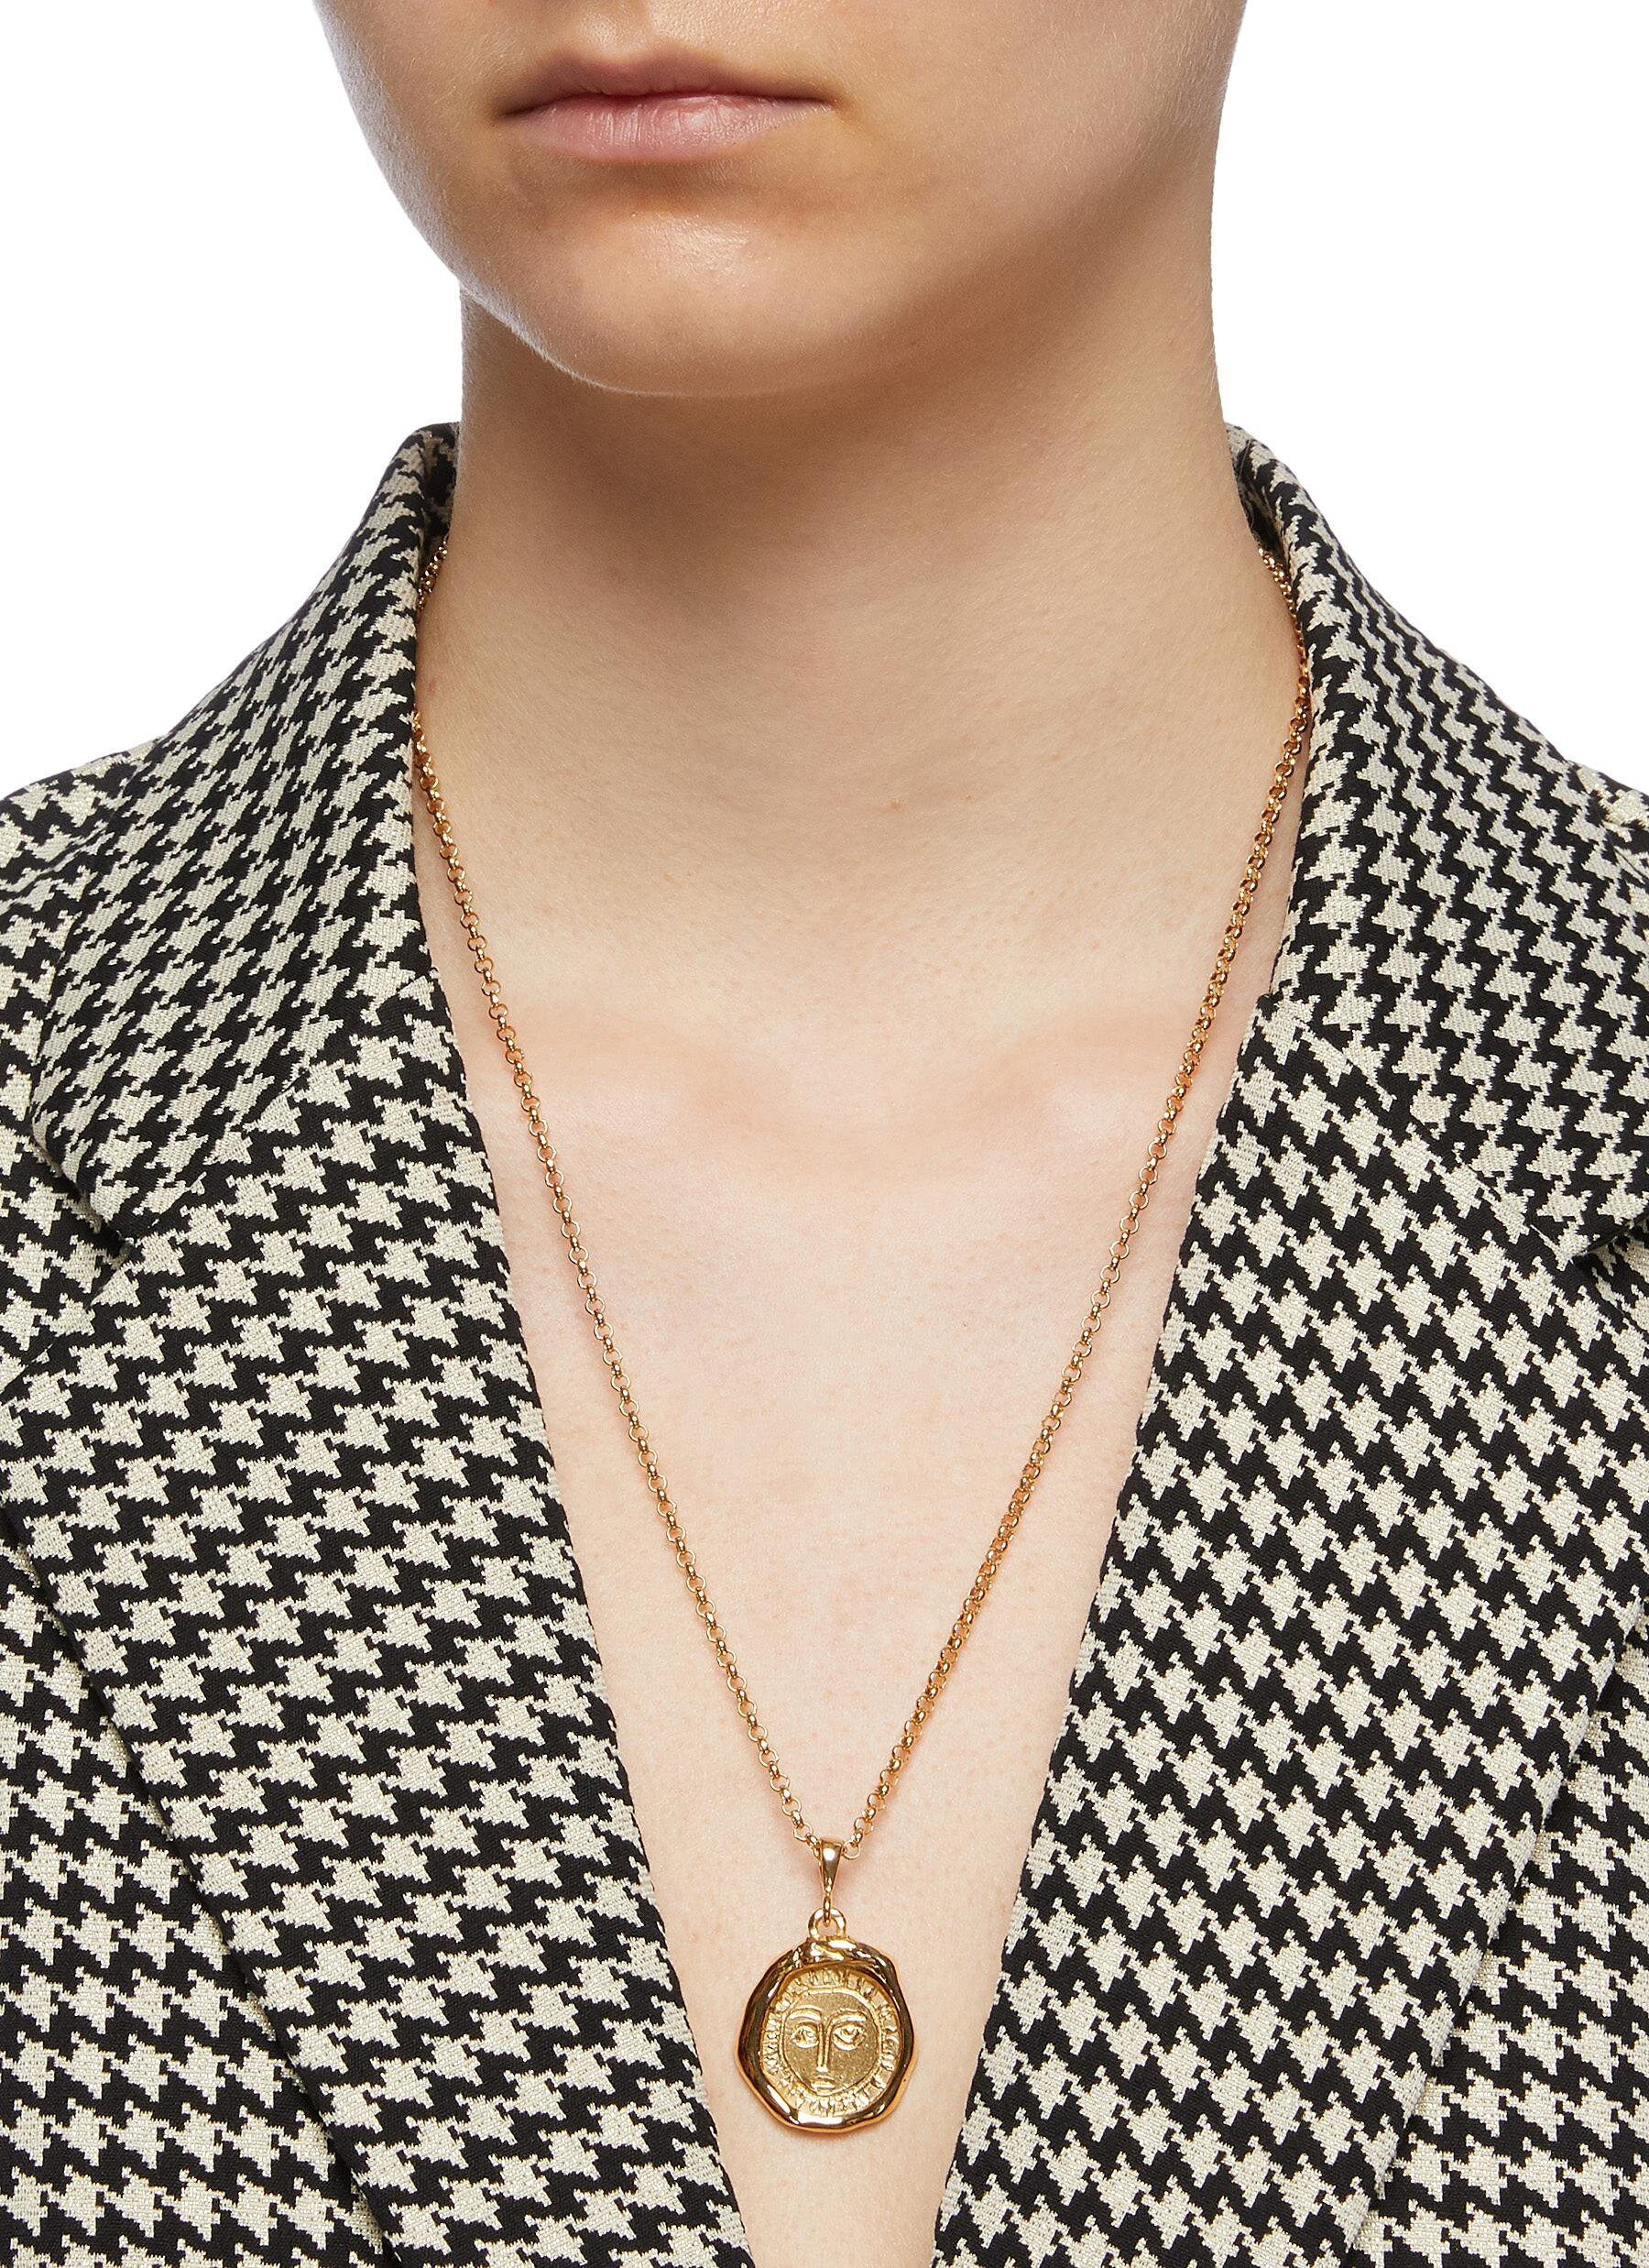 Holly Ryan 'picasso' Pendant Necklace  HKD$3,190